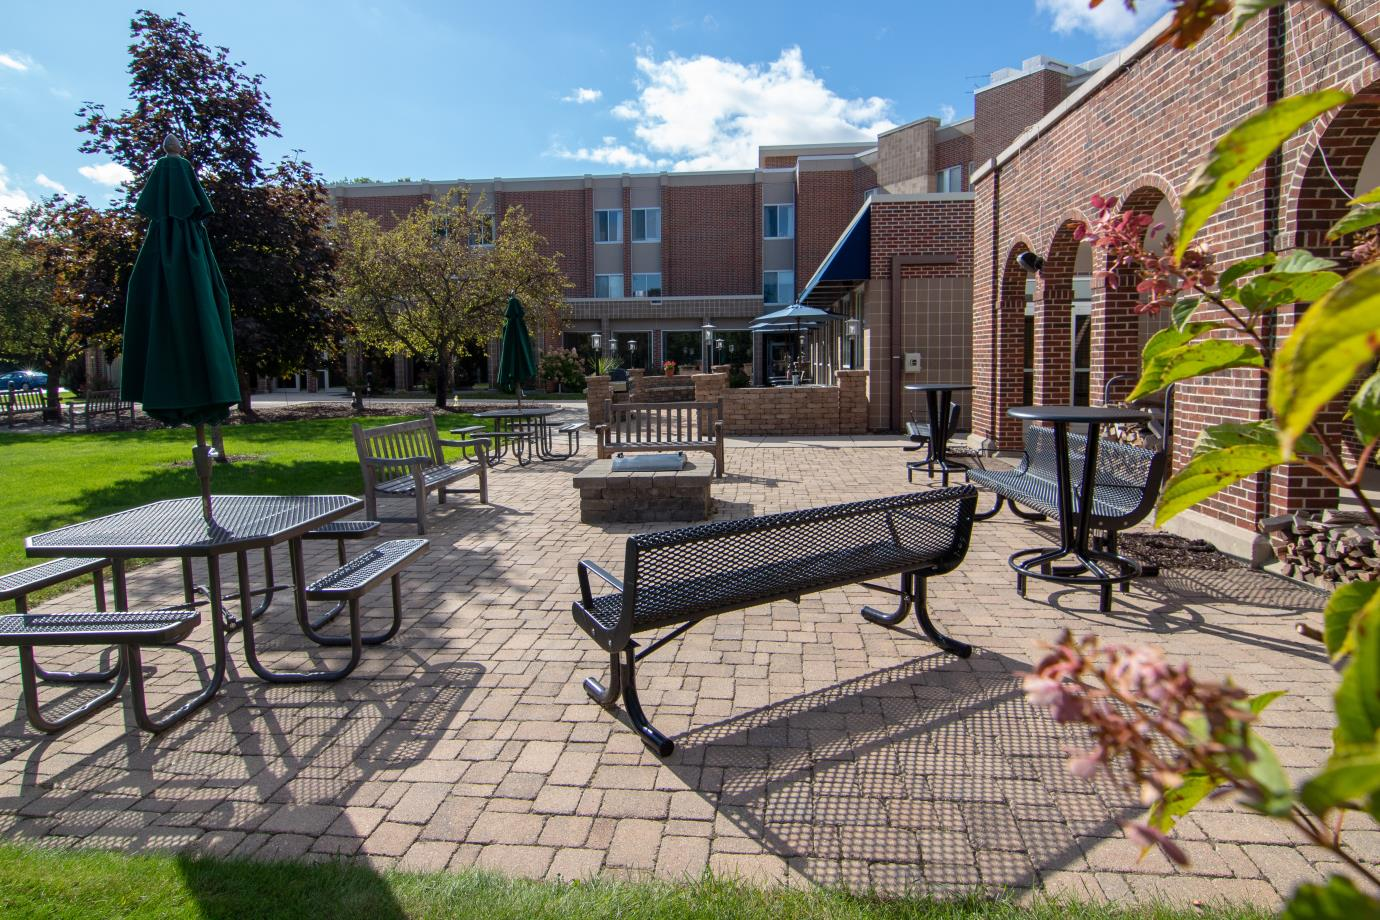 Fire pit area is used during the fall evenings for resident events